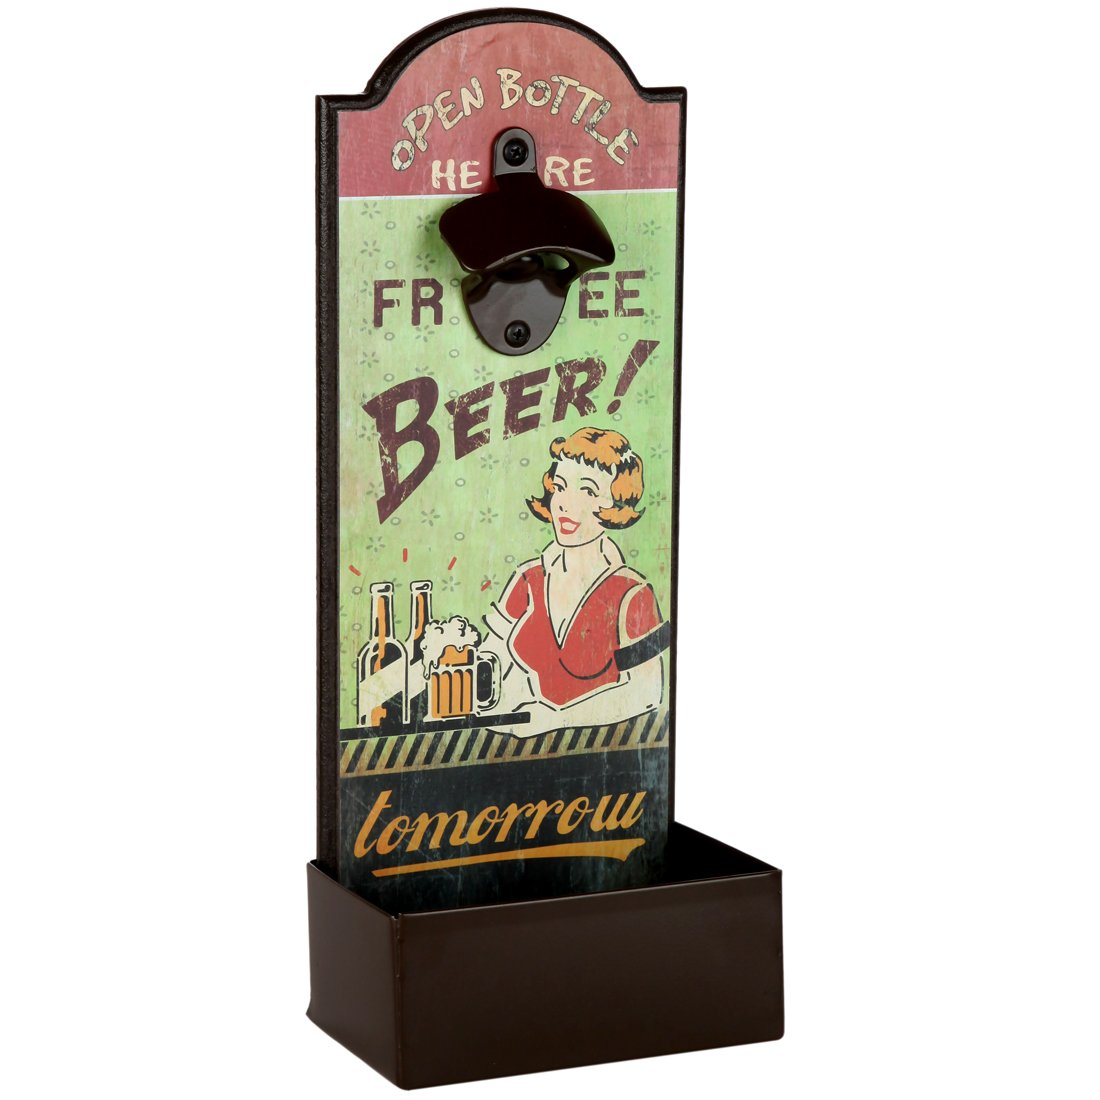 Lily S Home Vintage Humorous Beer Bottle Opener With Cap